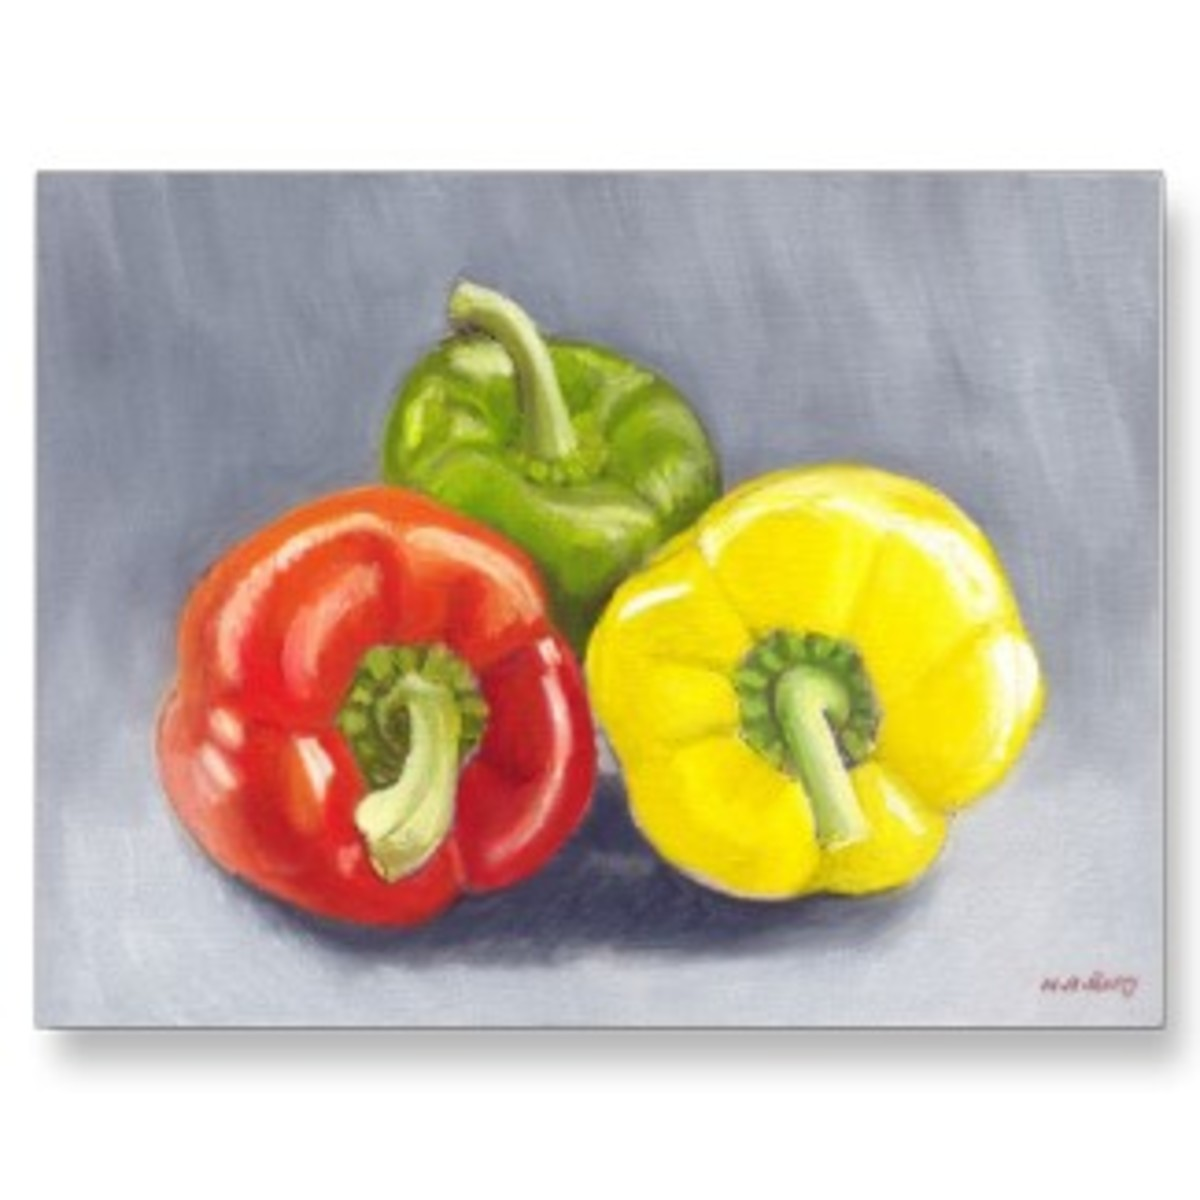 Print of a still-life painting of red, green and yellow bell peppers. Painting by Nicolette Amanda Berry